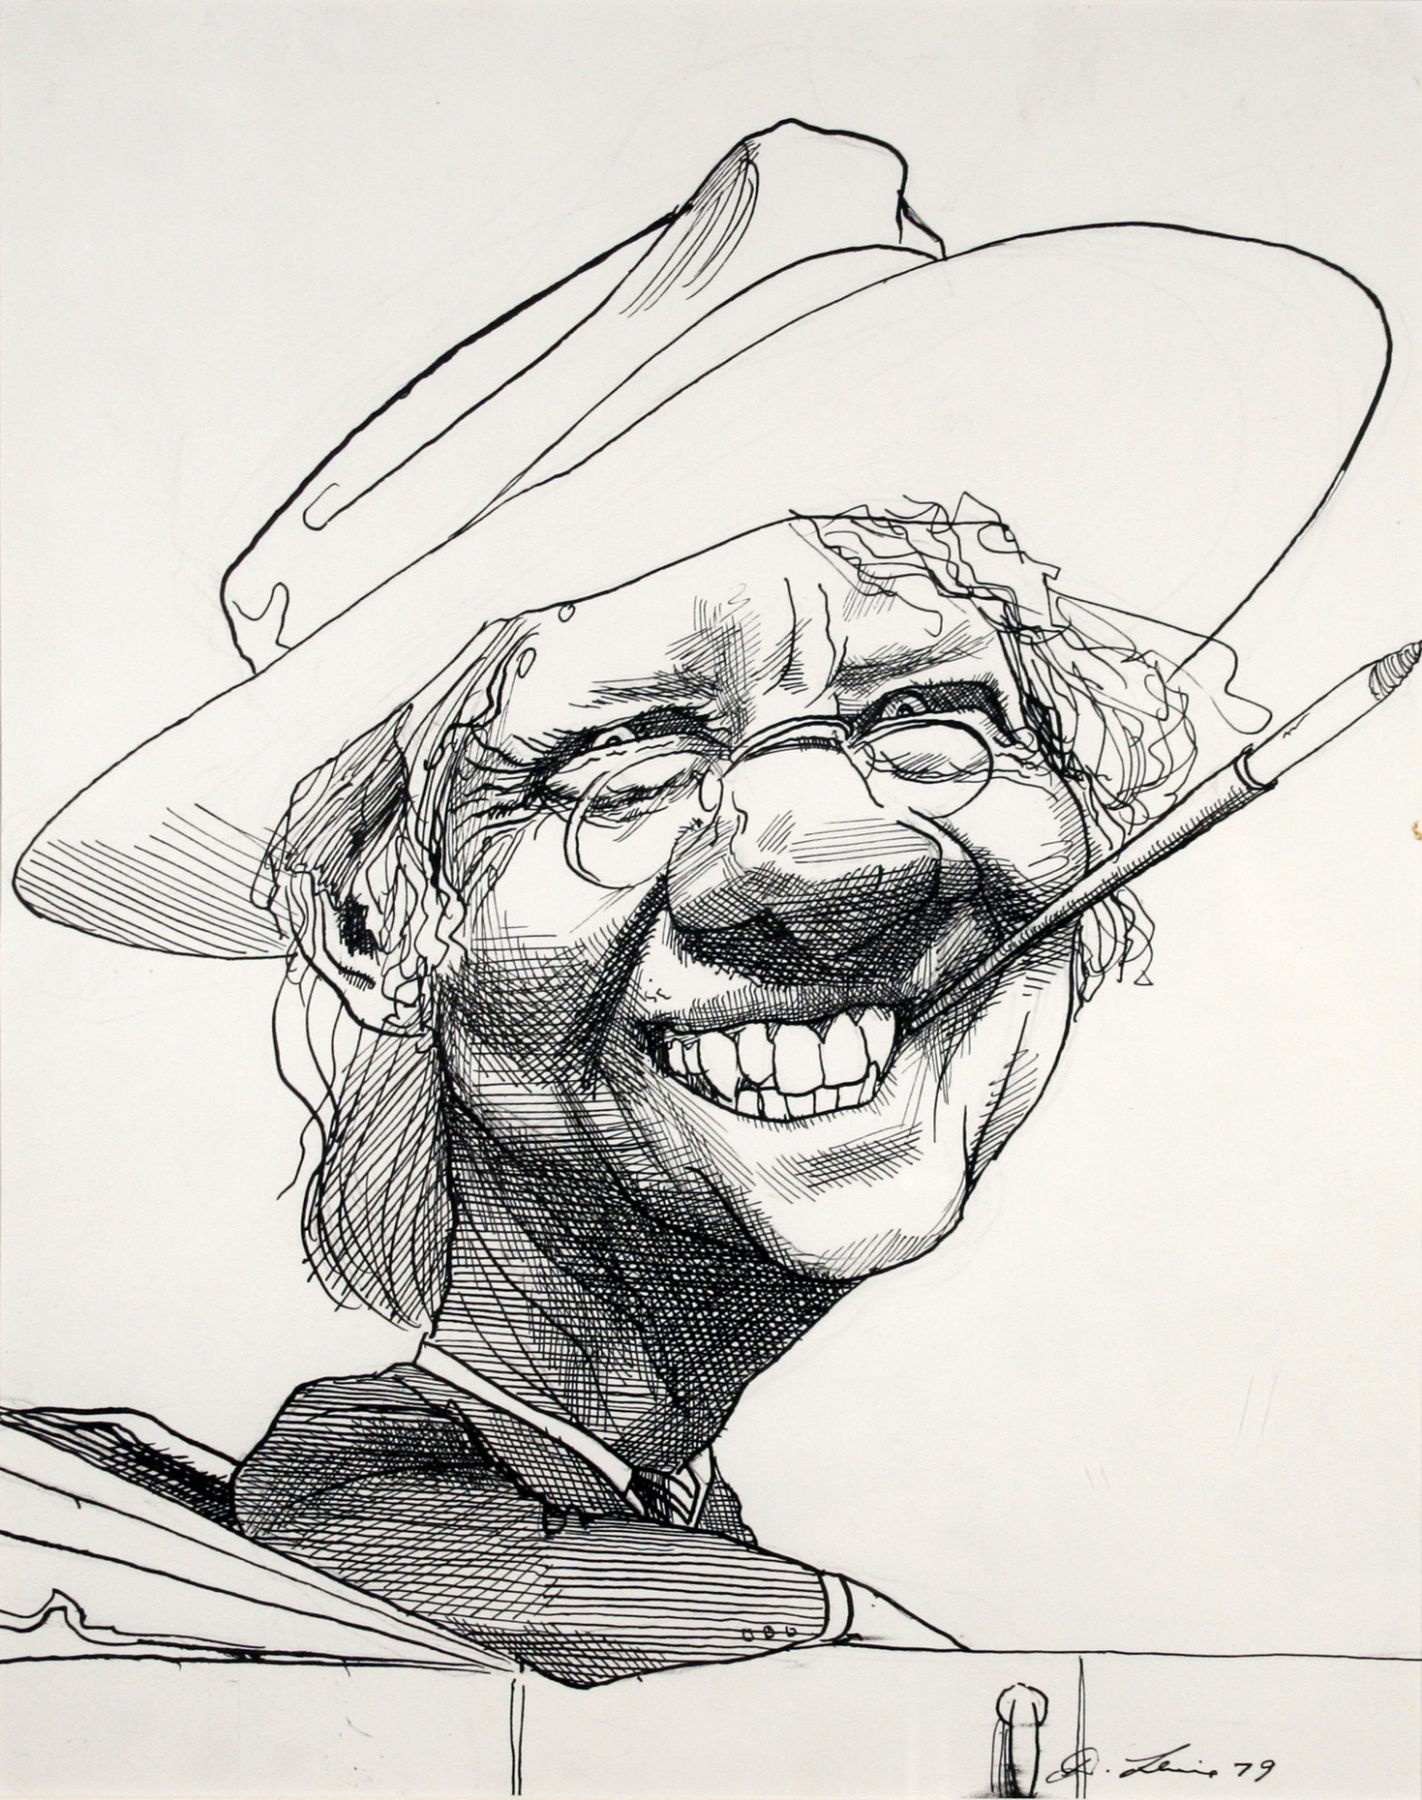 David Levine, Jimmy Carter, 1979, ink on paper, 13 3/4 x 11 inches